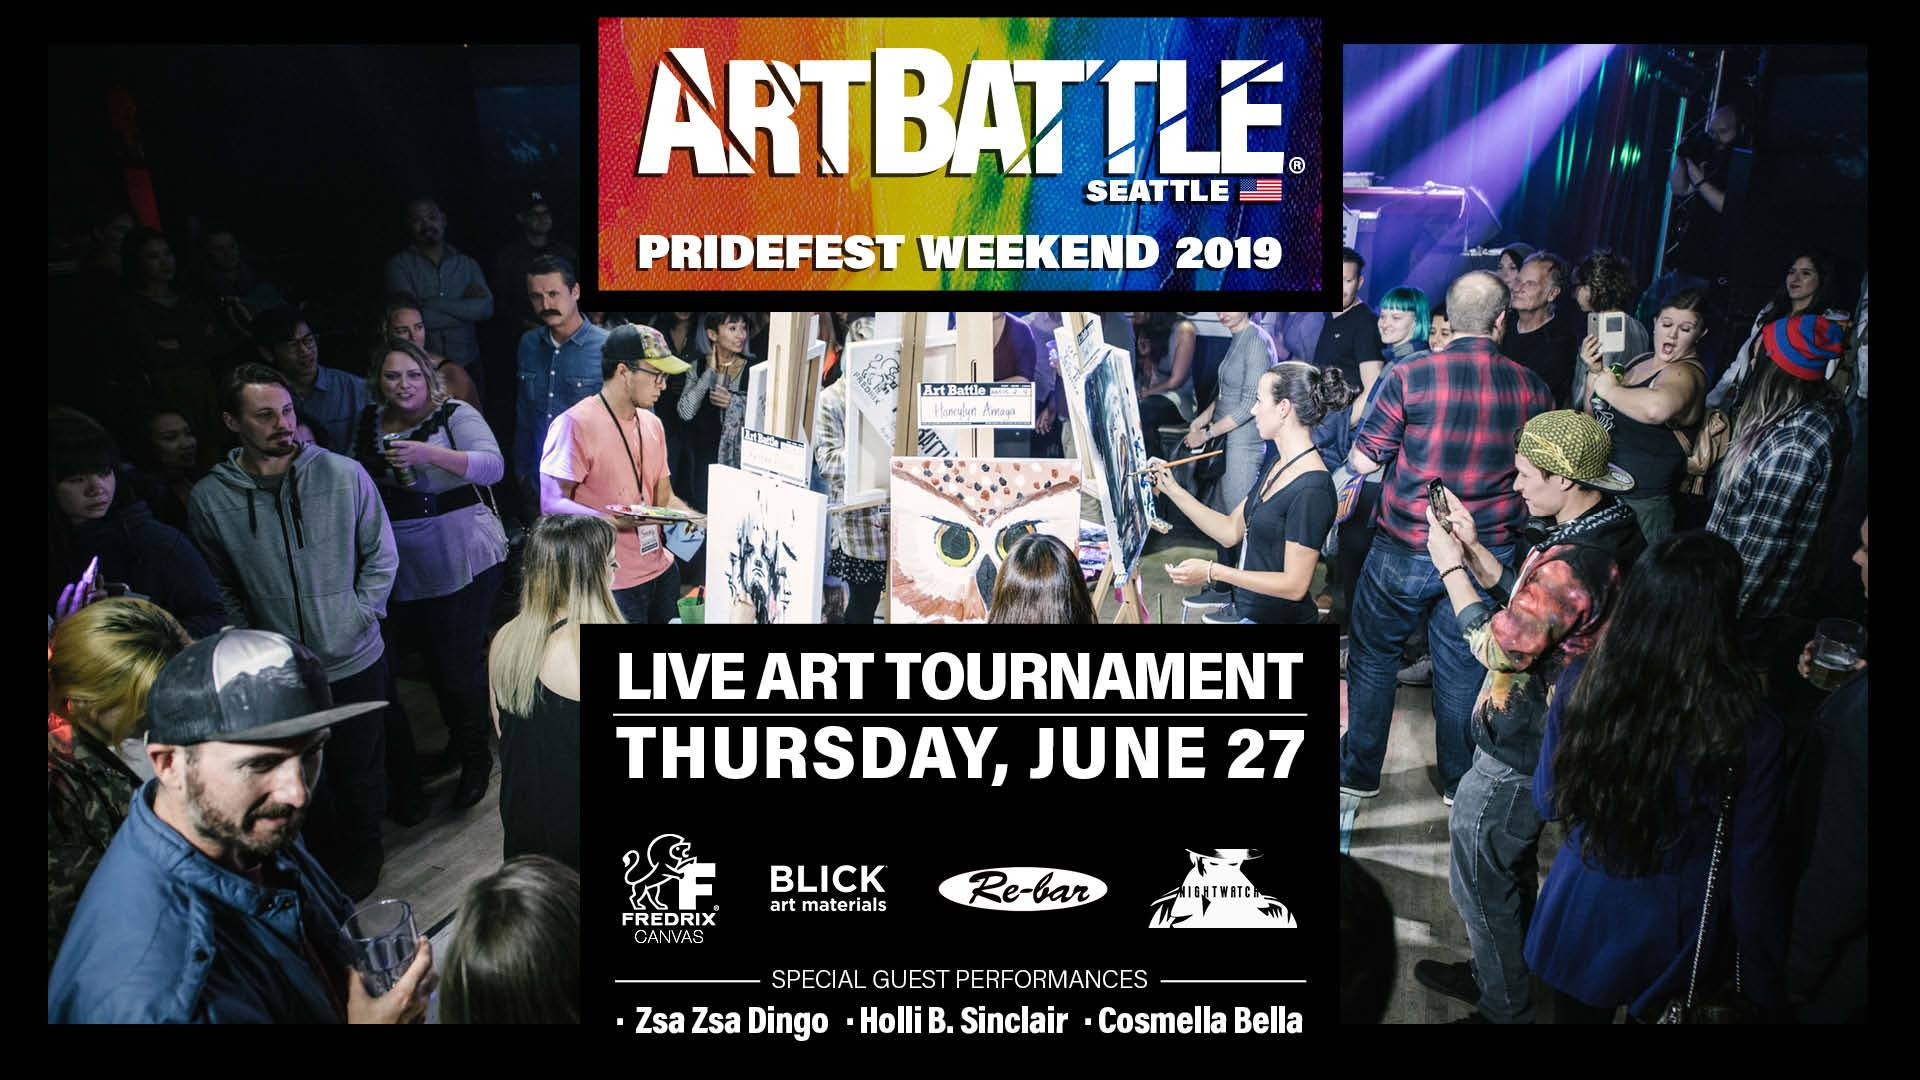 Art Battle Seattle: Pride Edition - June 27, 2019 à Seattle le jeu. 27 juin 2019 de 18h30 à 22h30 (After-Work Gay Friendly)